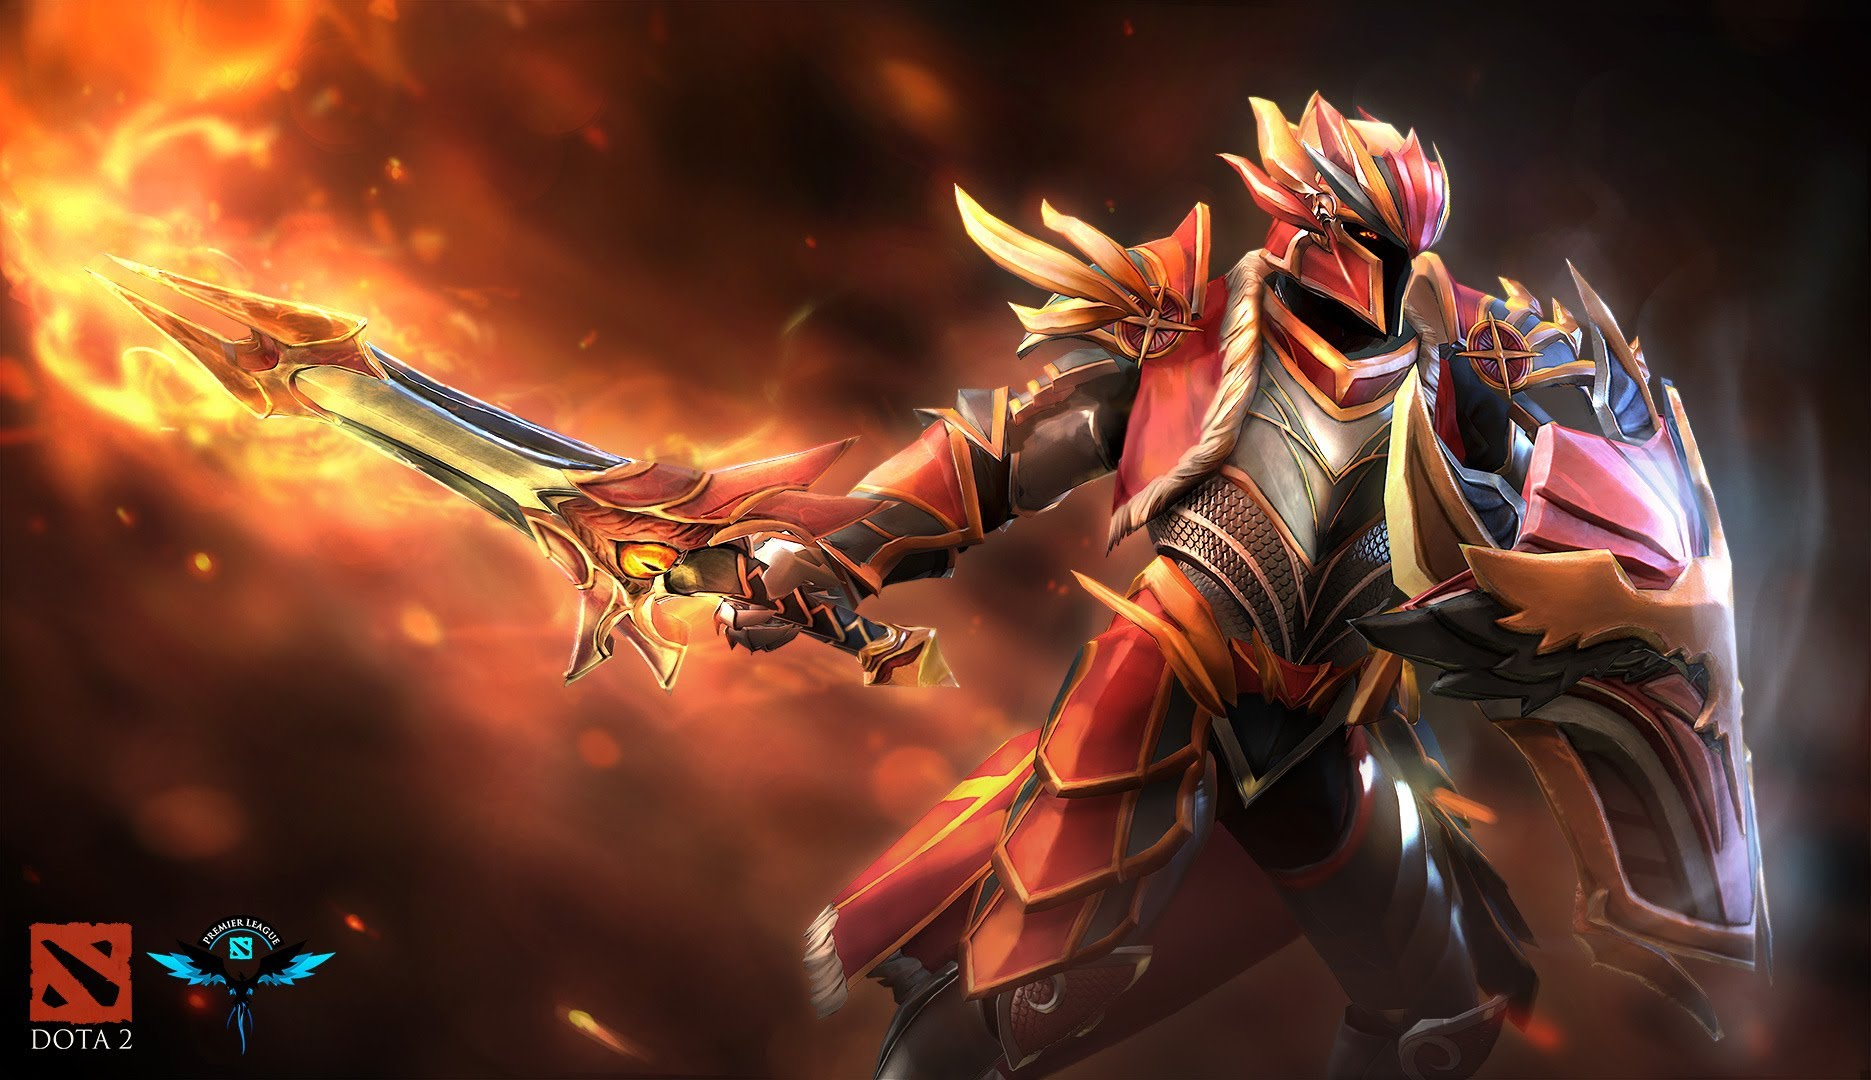 Heroes Evolved Hd Wallpaper Dota 2 Wallpaper And Background Image 1871x1080 Id 548107